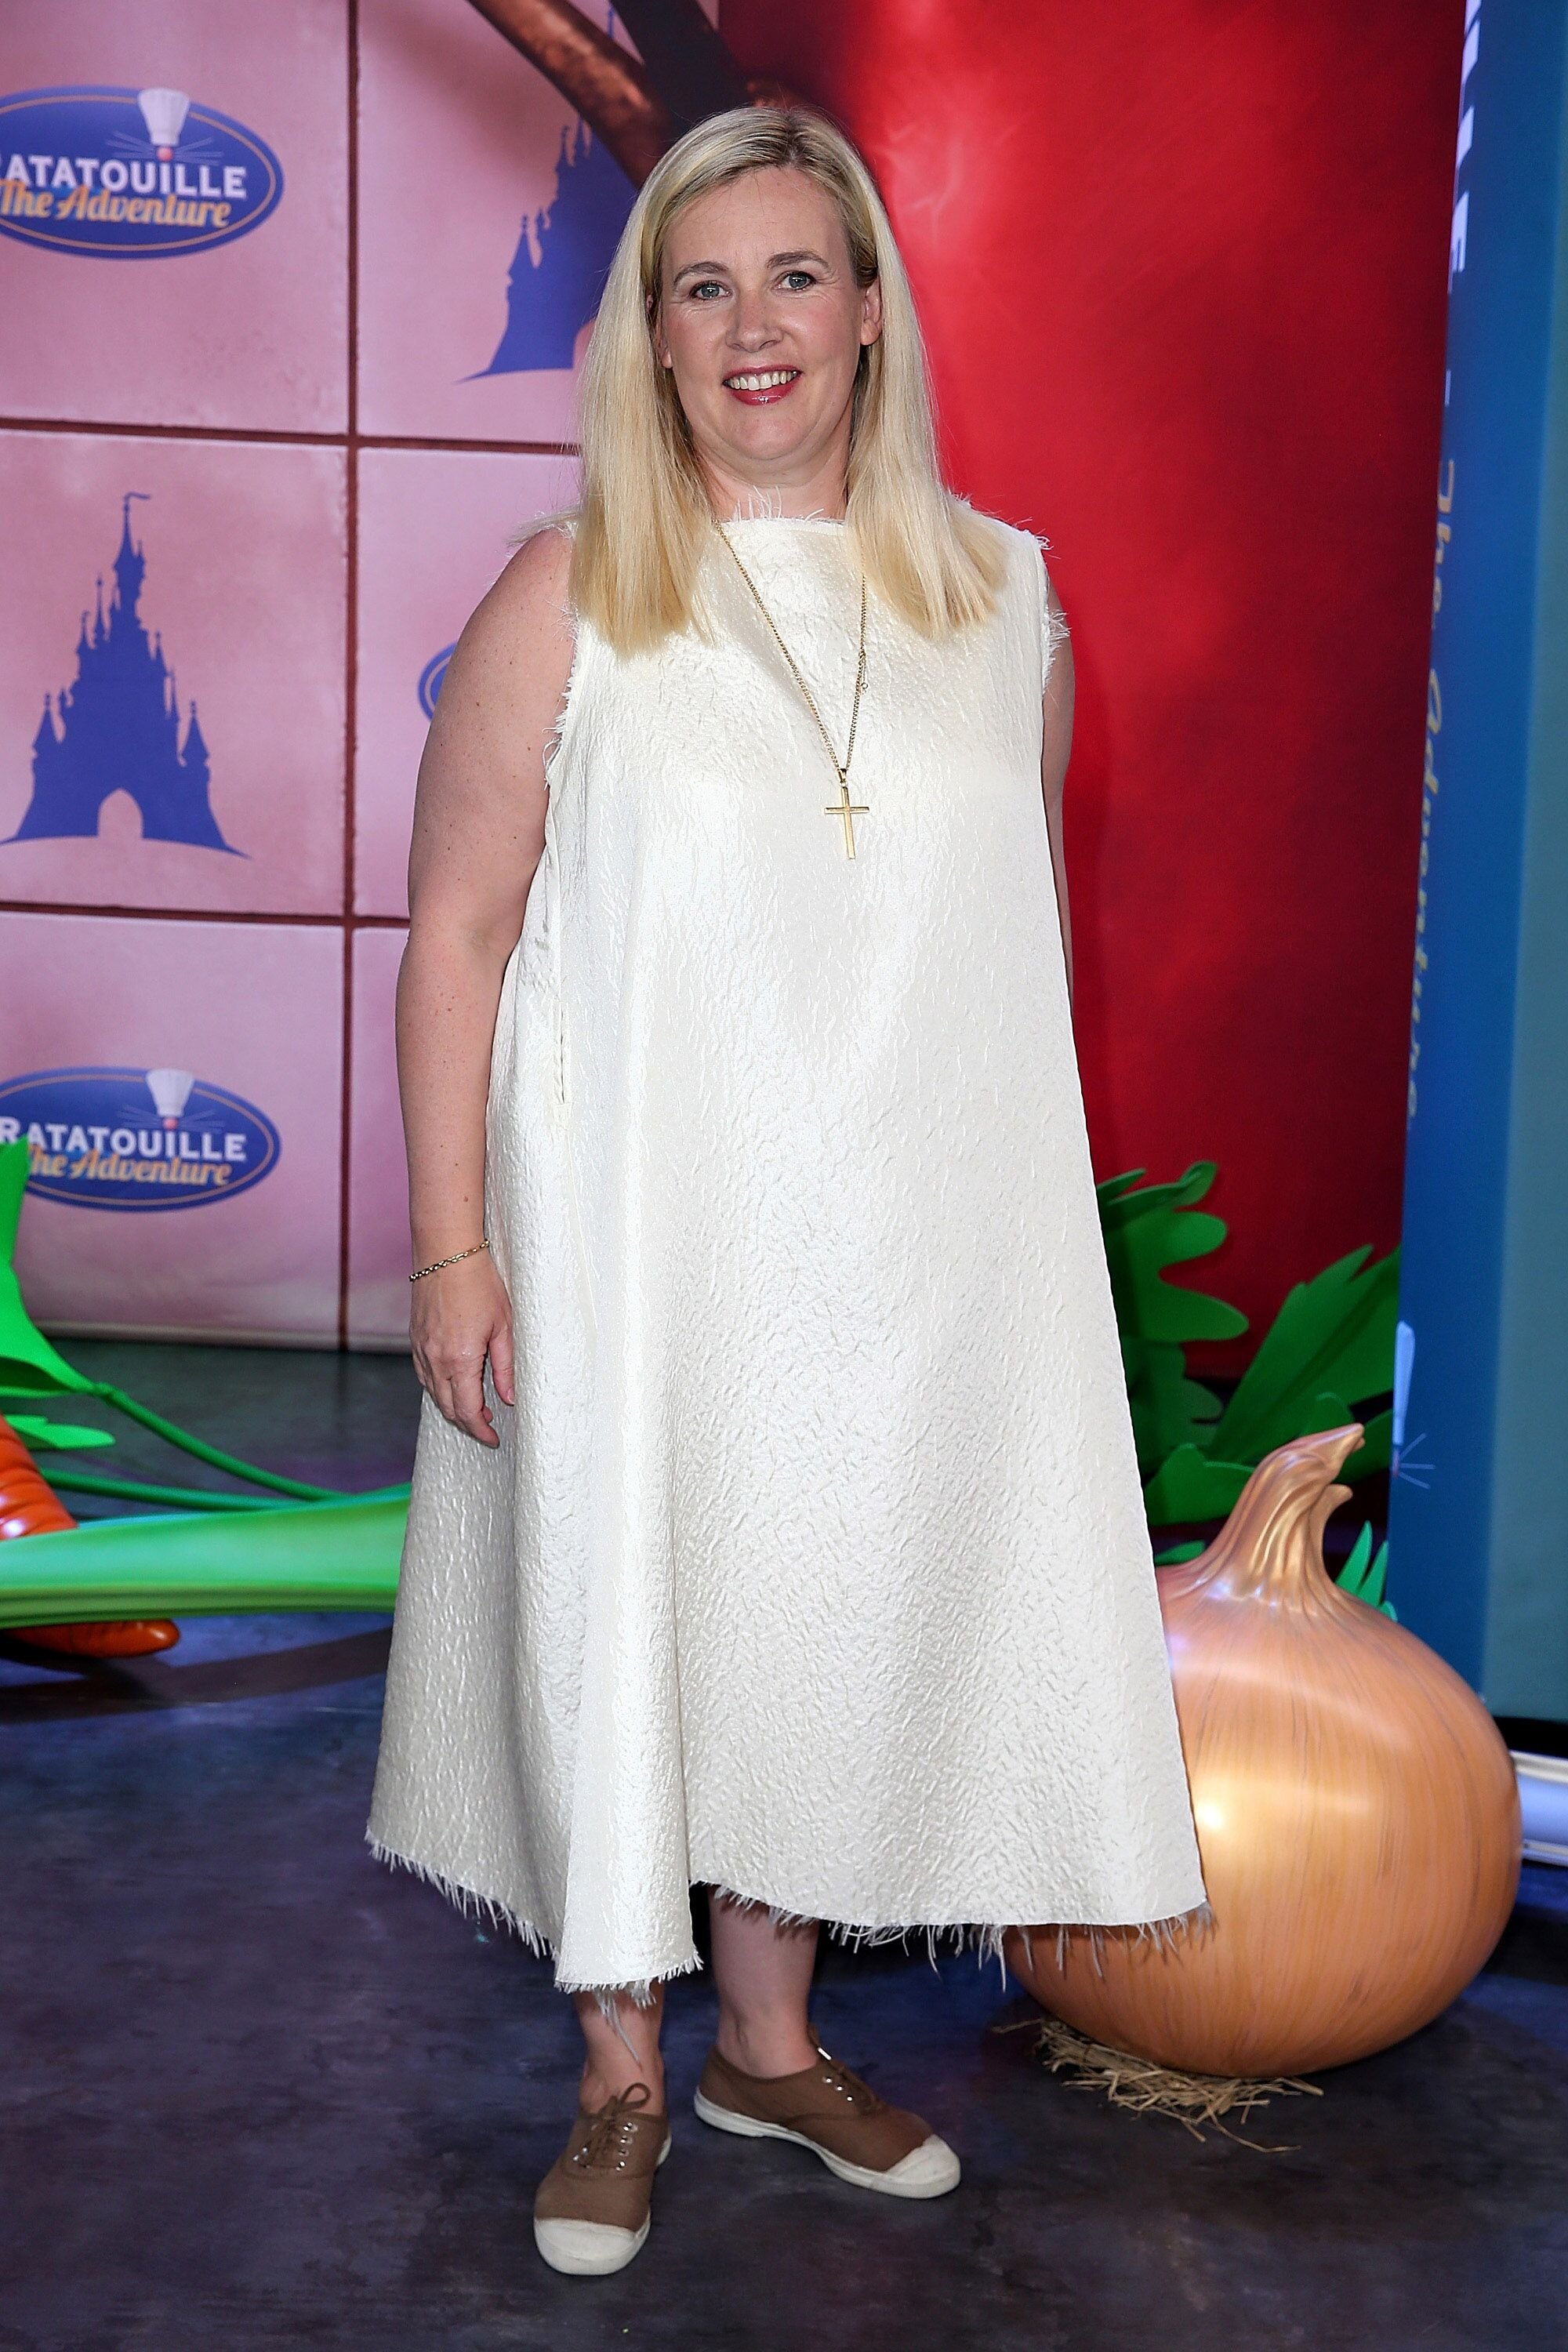 Hélène Darroze à Disneyland Resort Paris le 21 juin 2014 à Paris, France. | Photo : Getty Images